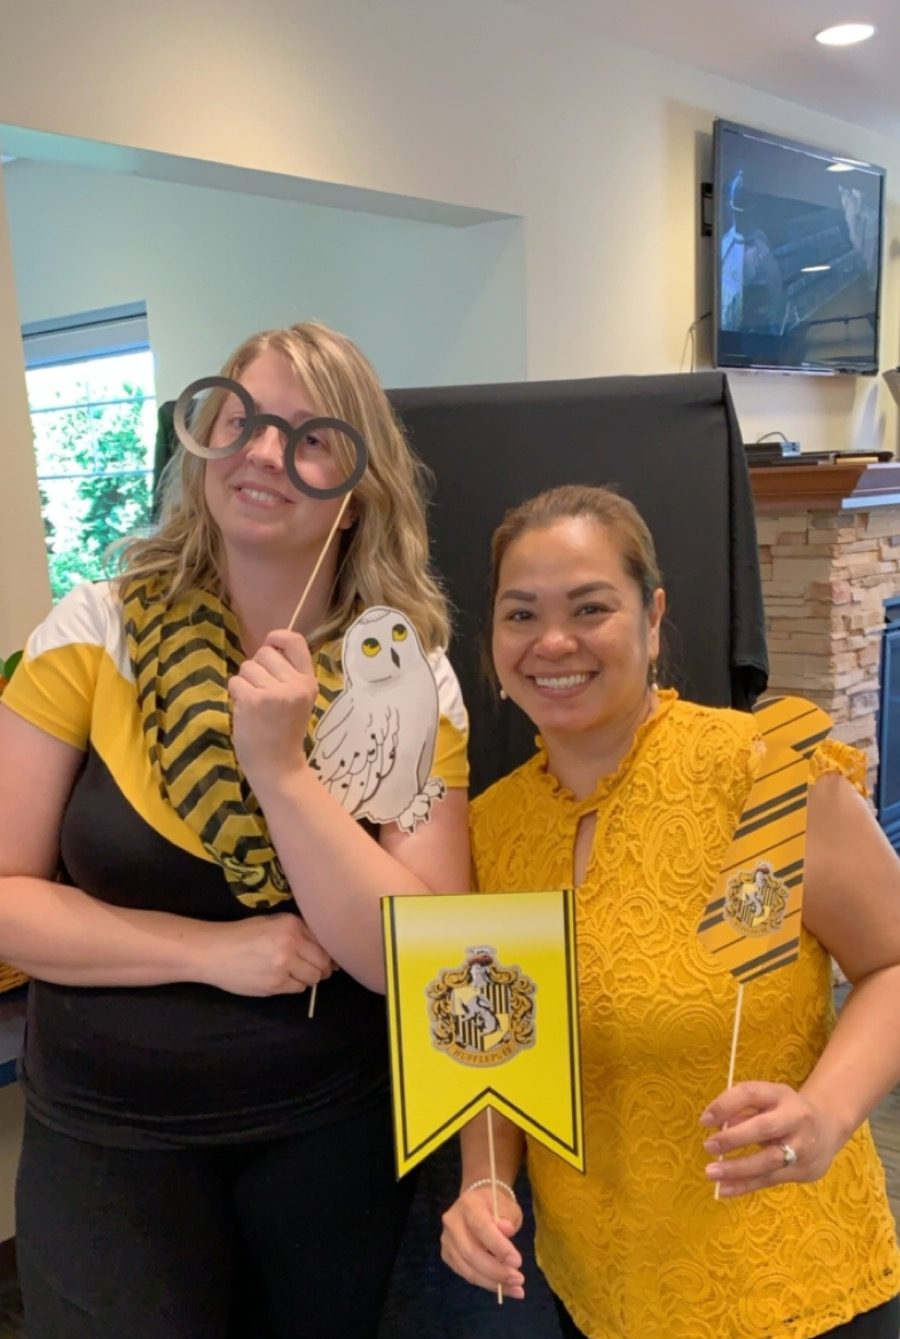 Two women wearing yellow and holding a Hufflepuff banner as well as prop glasses and a prop white owl